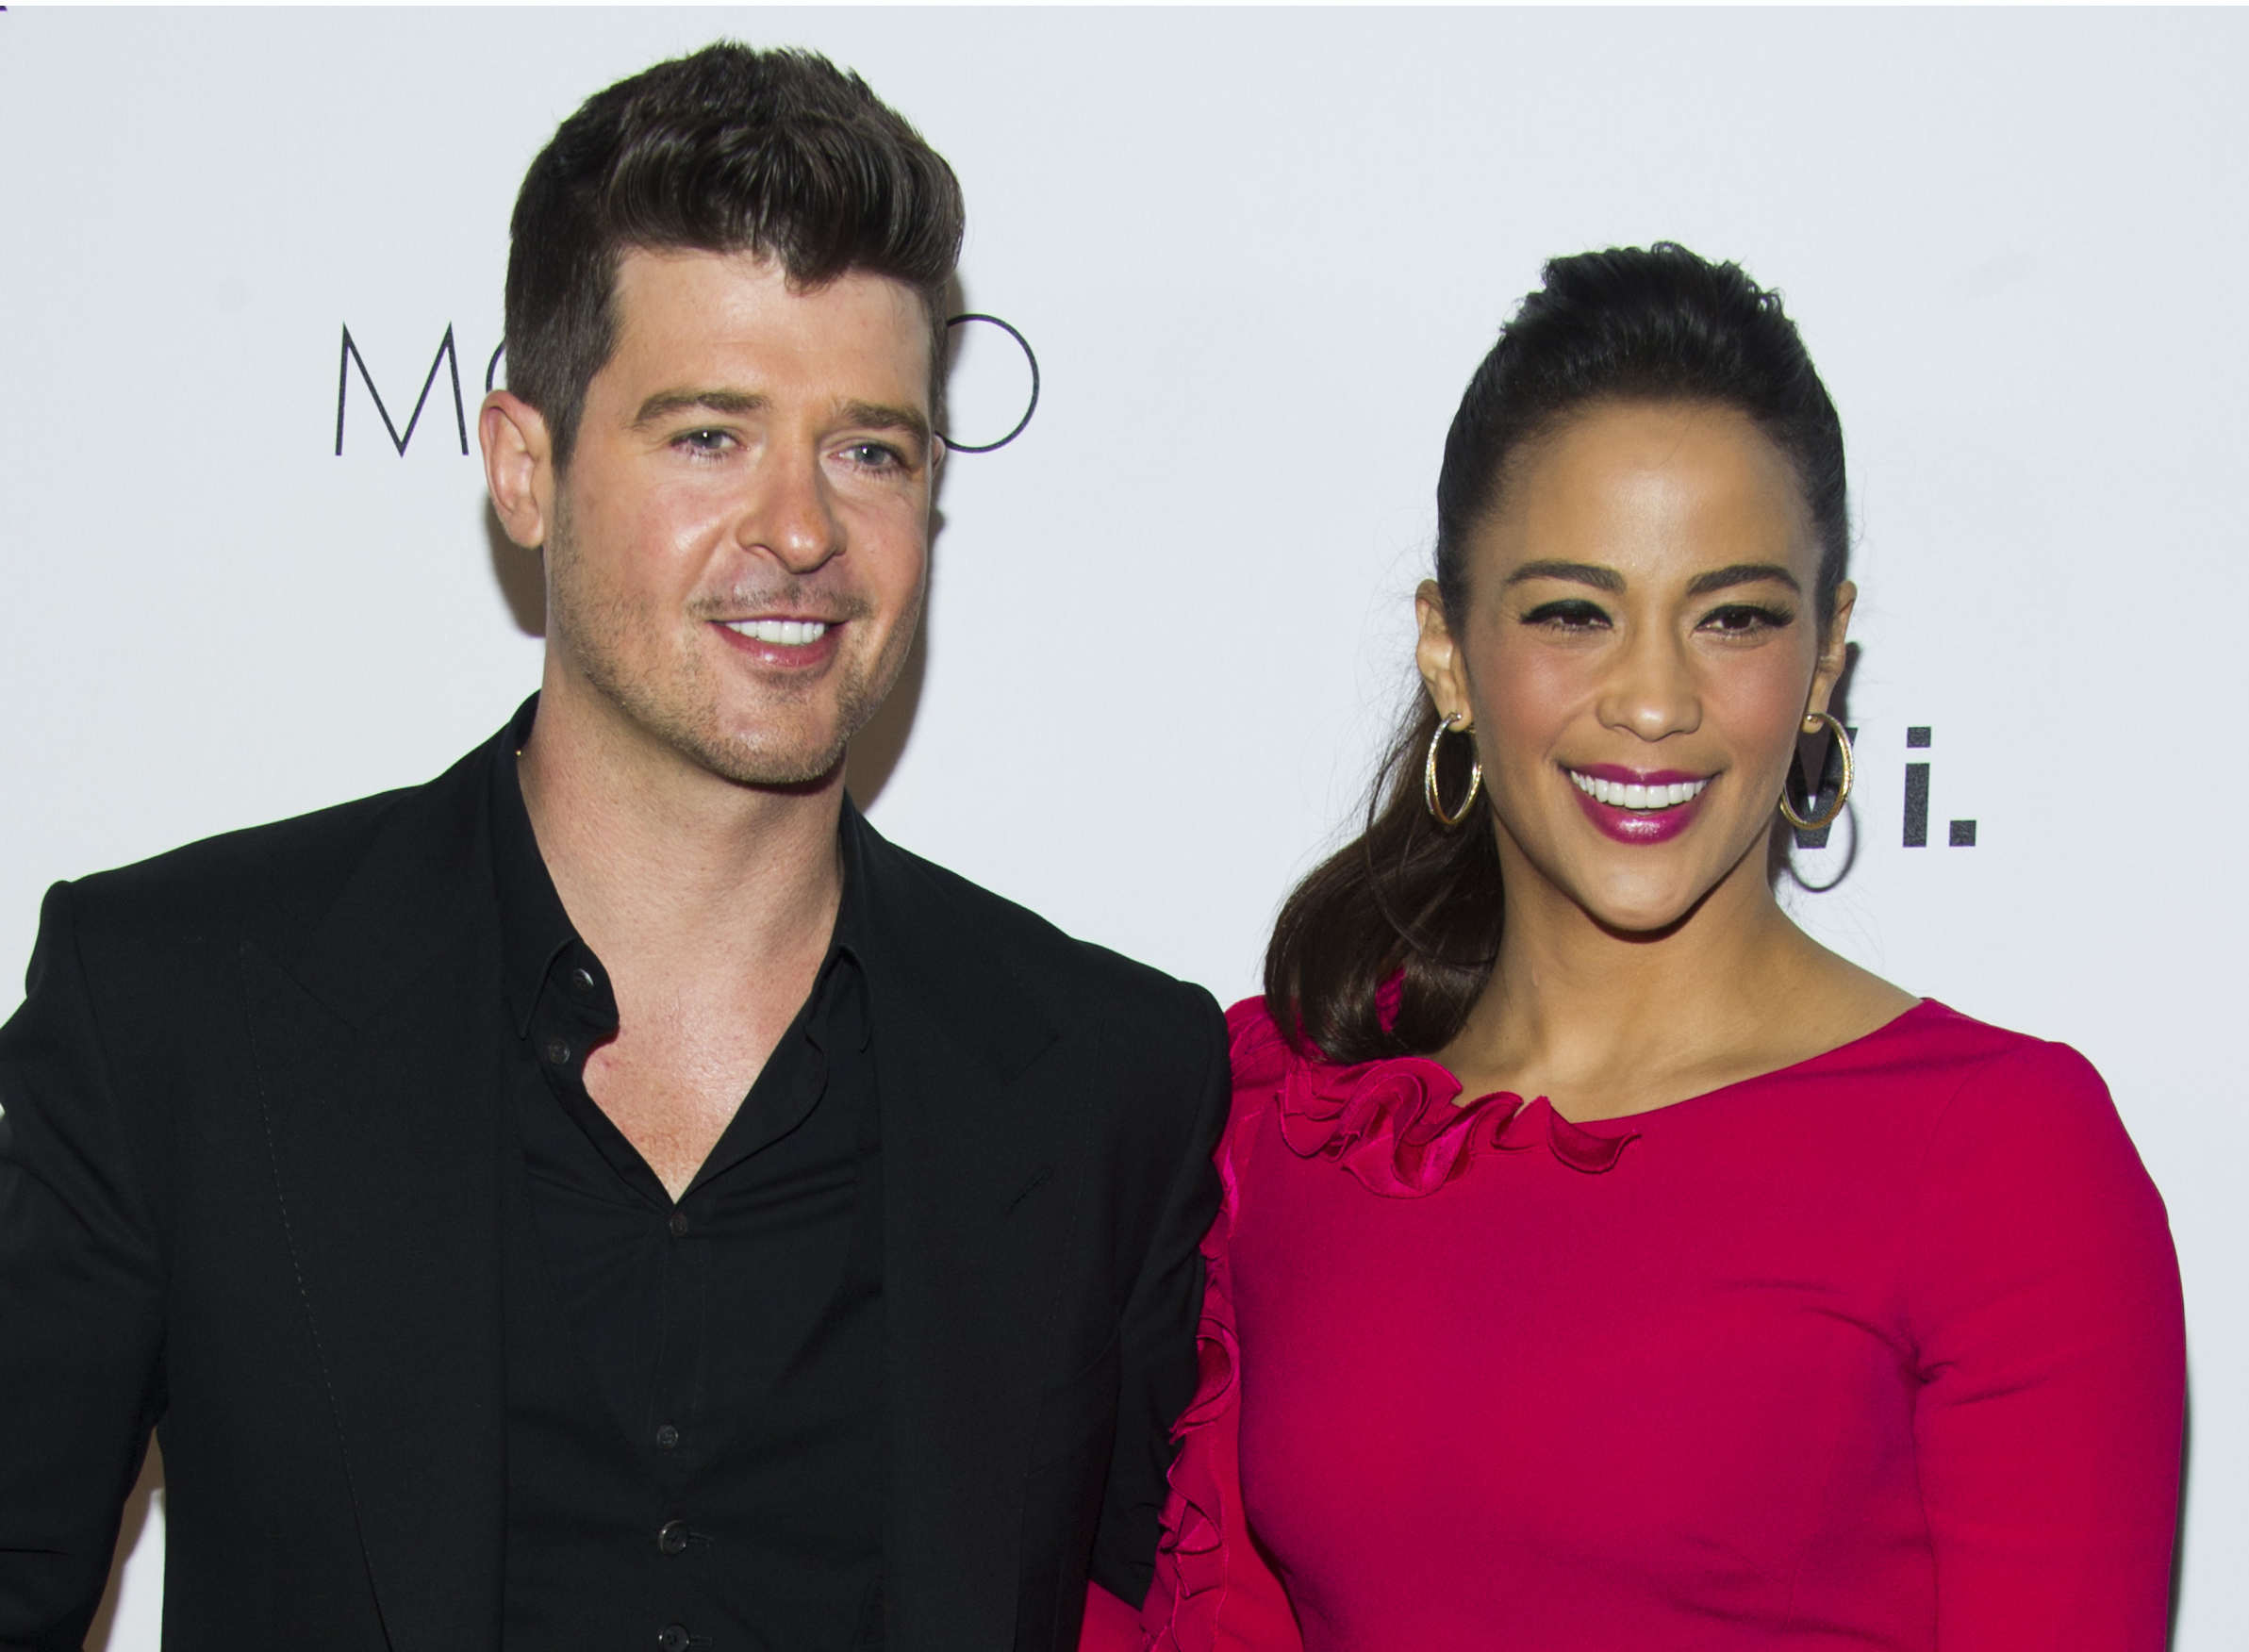 In this Wednesday, Oct. 23, 2013 file photo, Robin Thicke and Paula Patton attend the sixth annual GQ Gentlemen's Ball in New York.